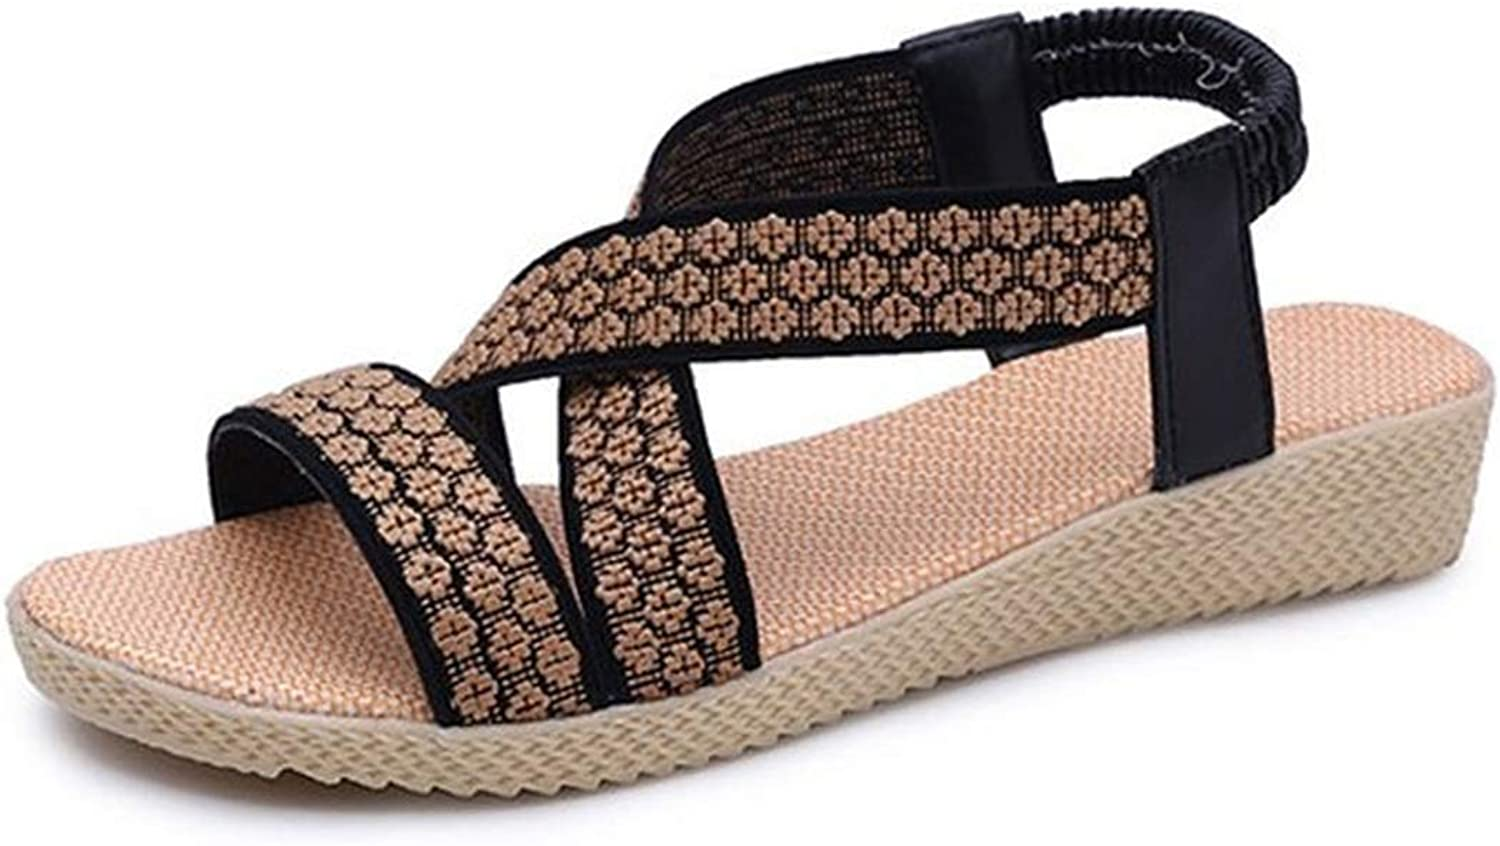 Female Summer Sandals Flat with Open Toe shoes Elastic Stretch Fabric Roman Cross Footwear